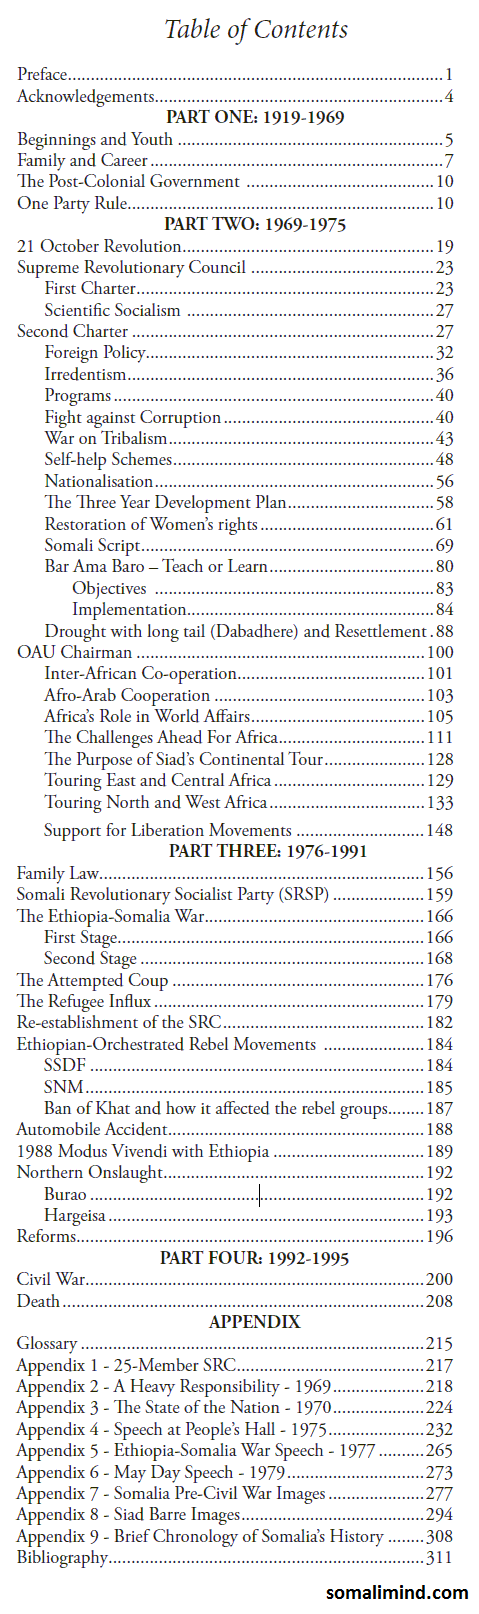 tableofcontents1 Somali President: Mohammed Siad Barre, His Life and Legacy   Table of Contents